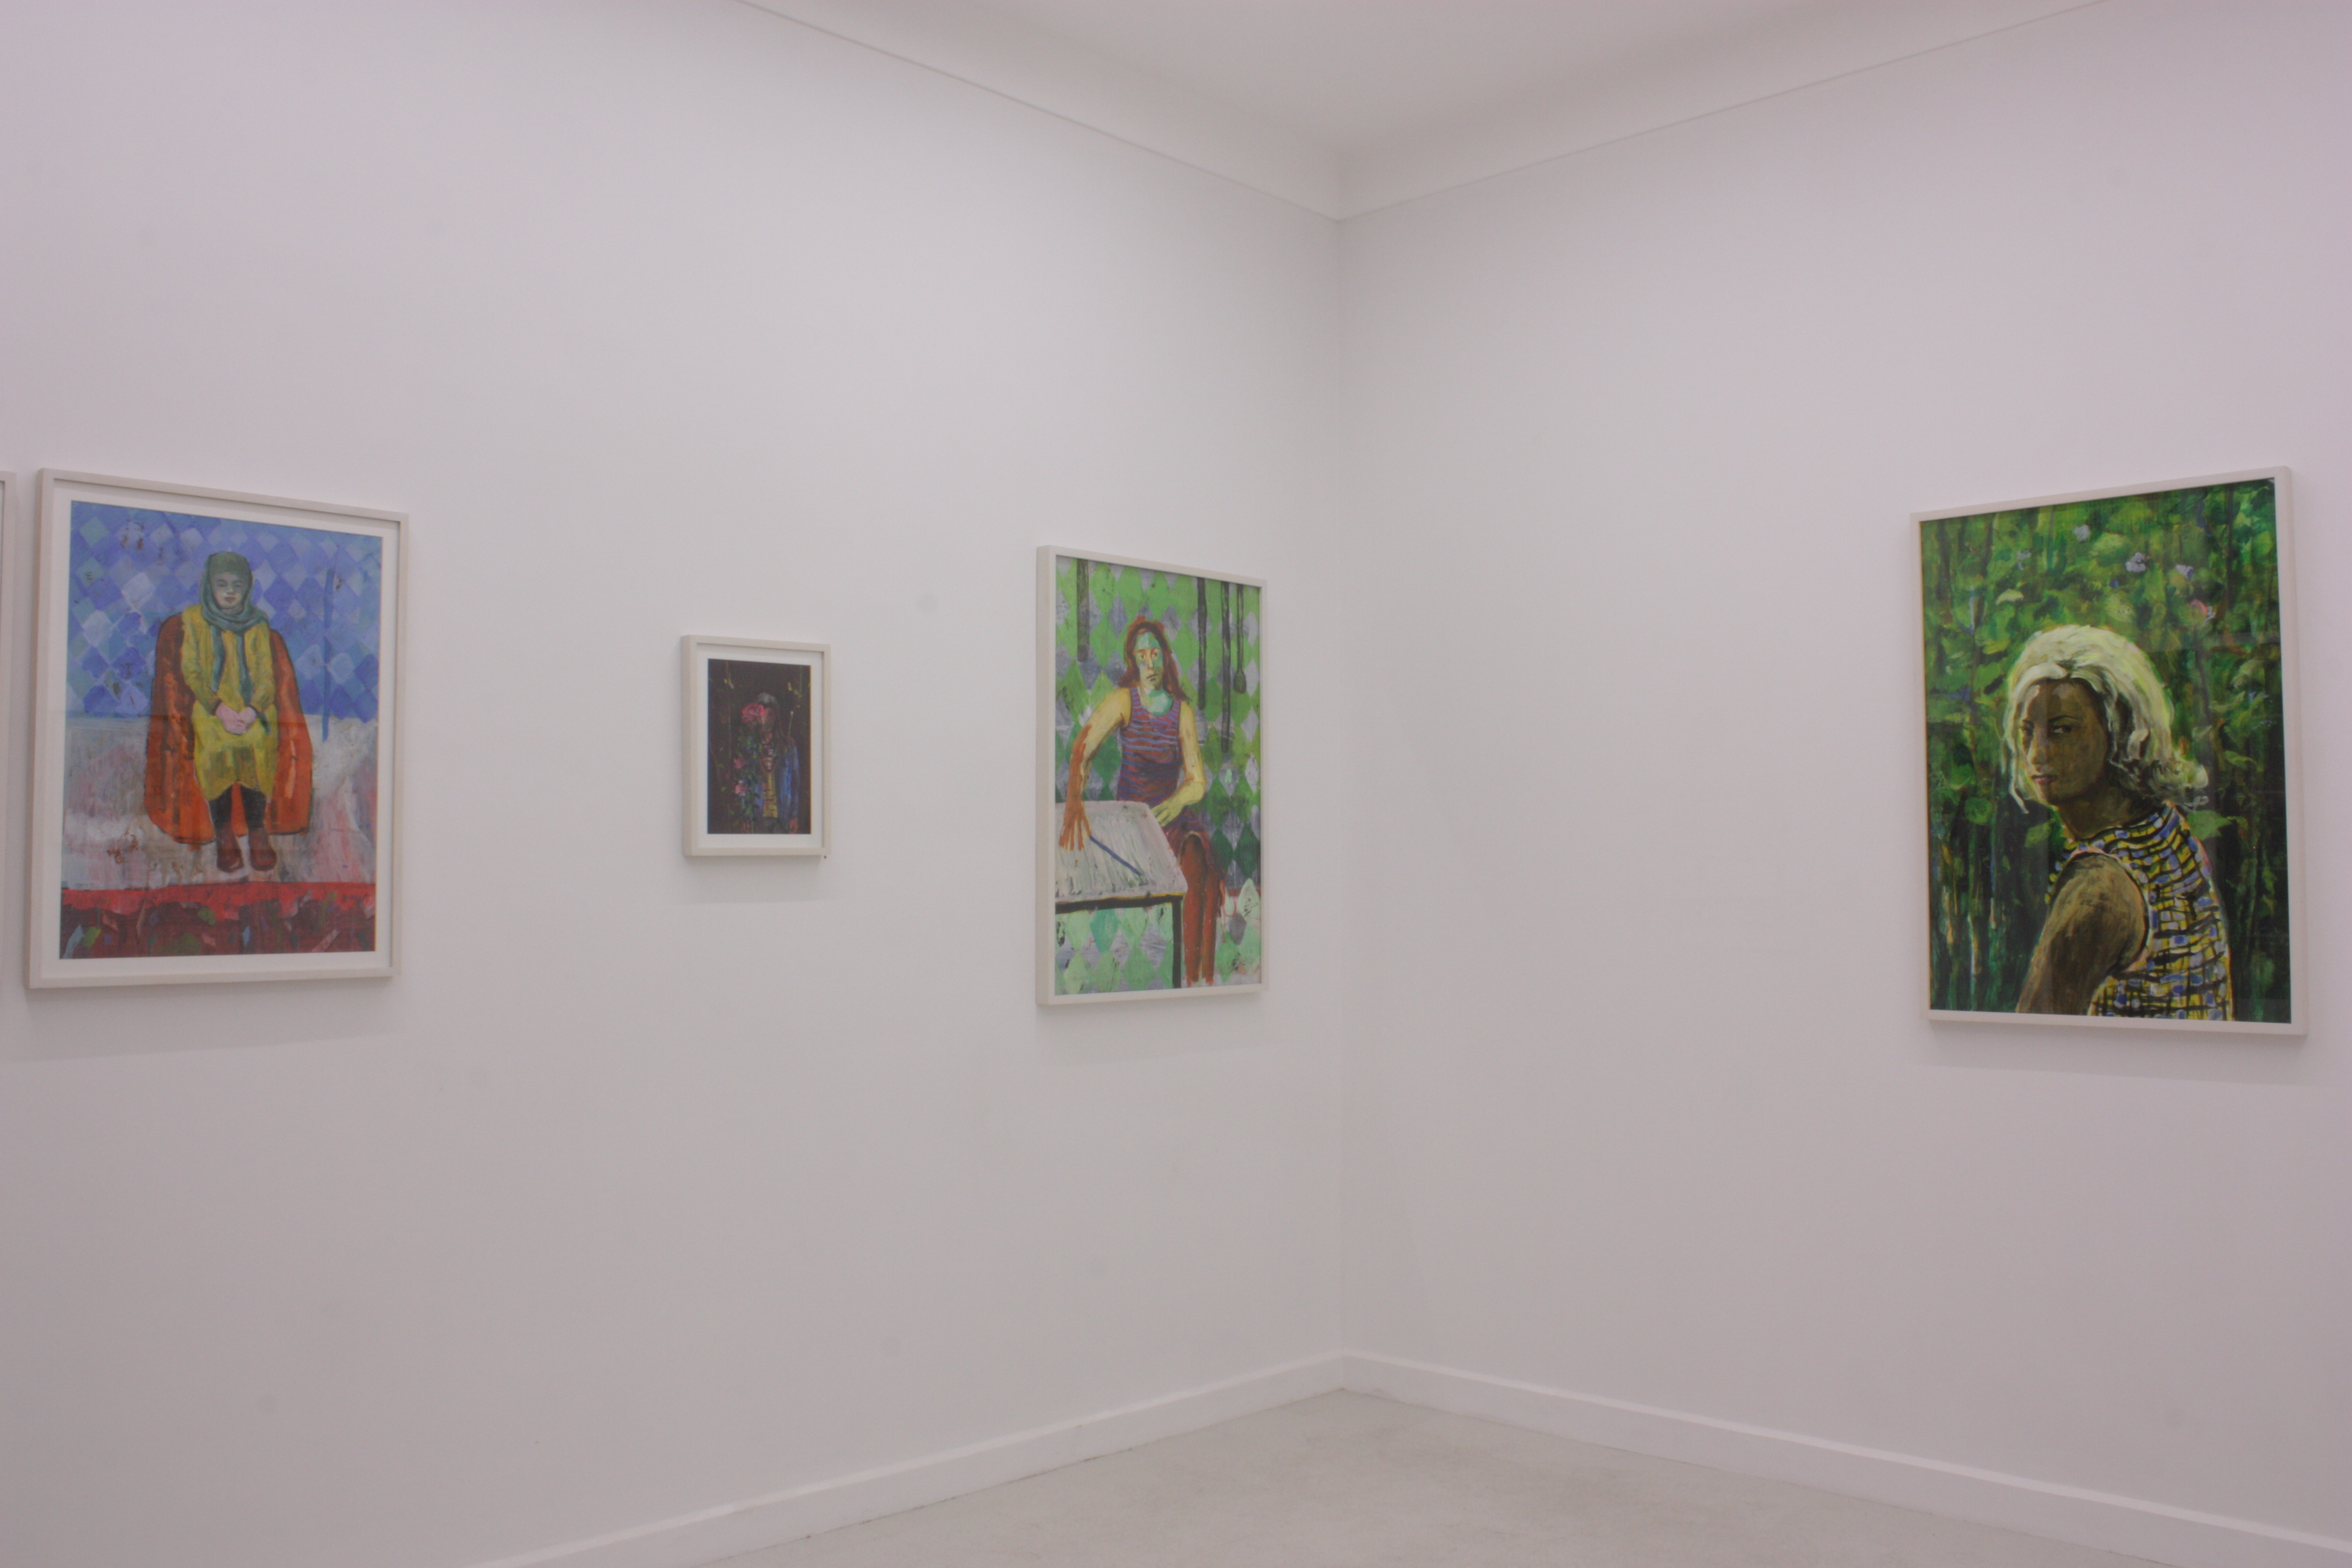 Installation view.Approaching The End Of Magic, The Plateau Closes in